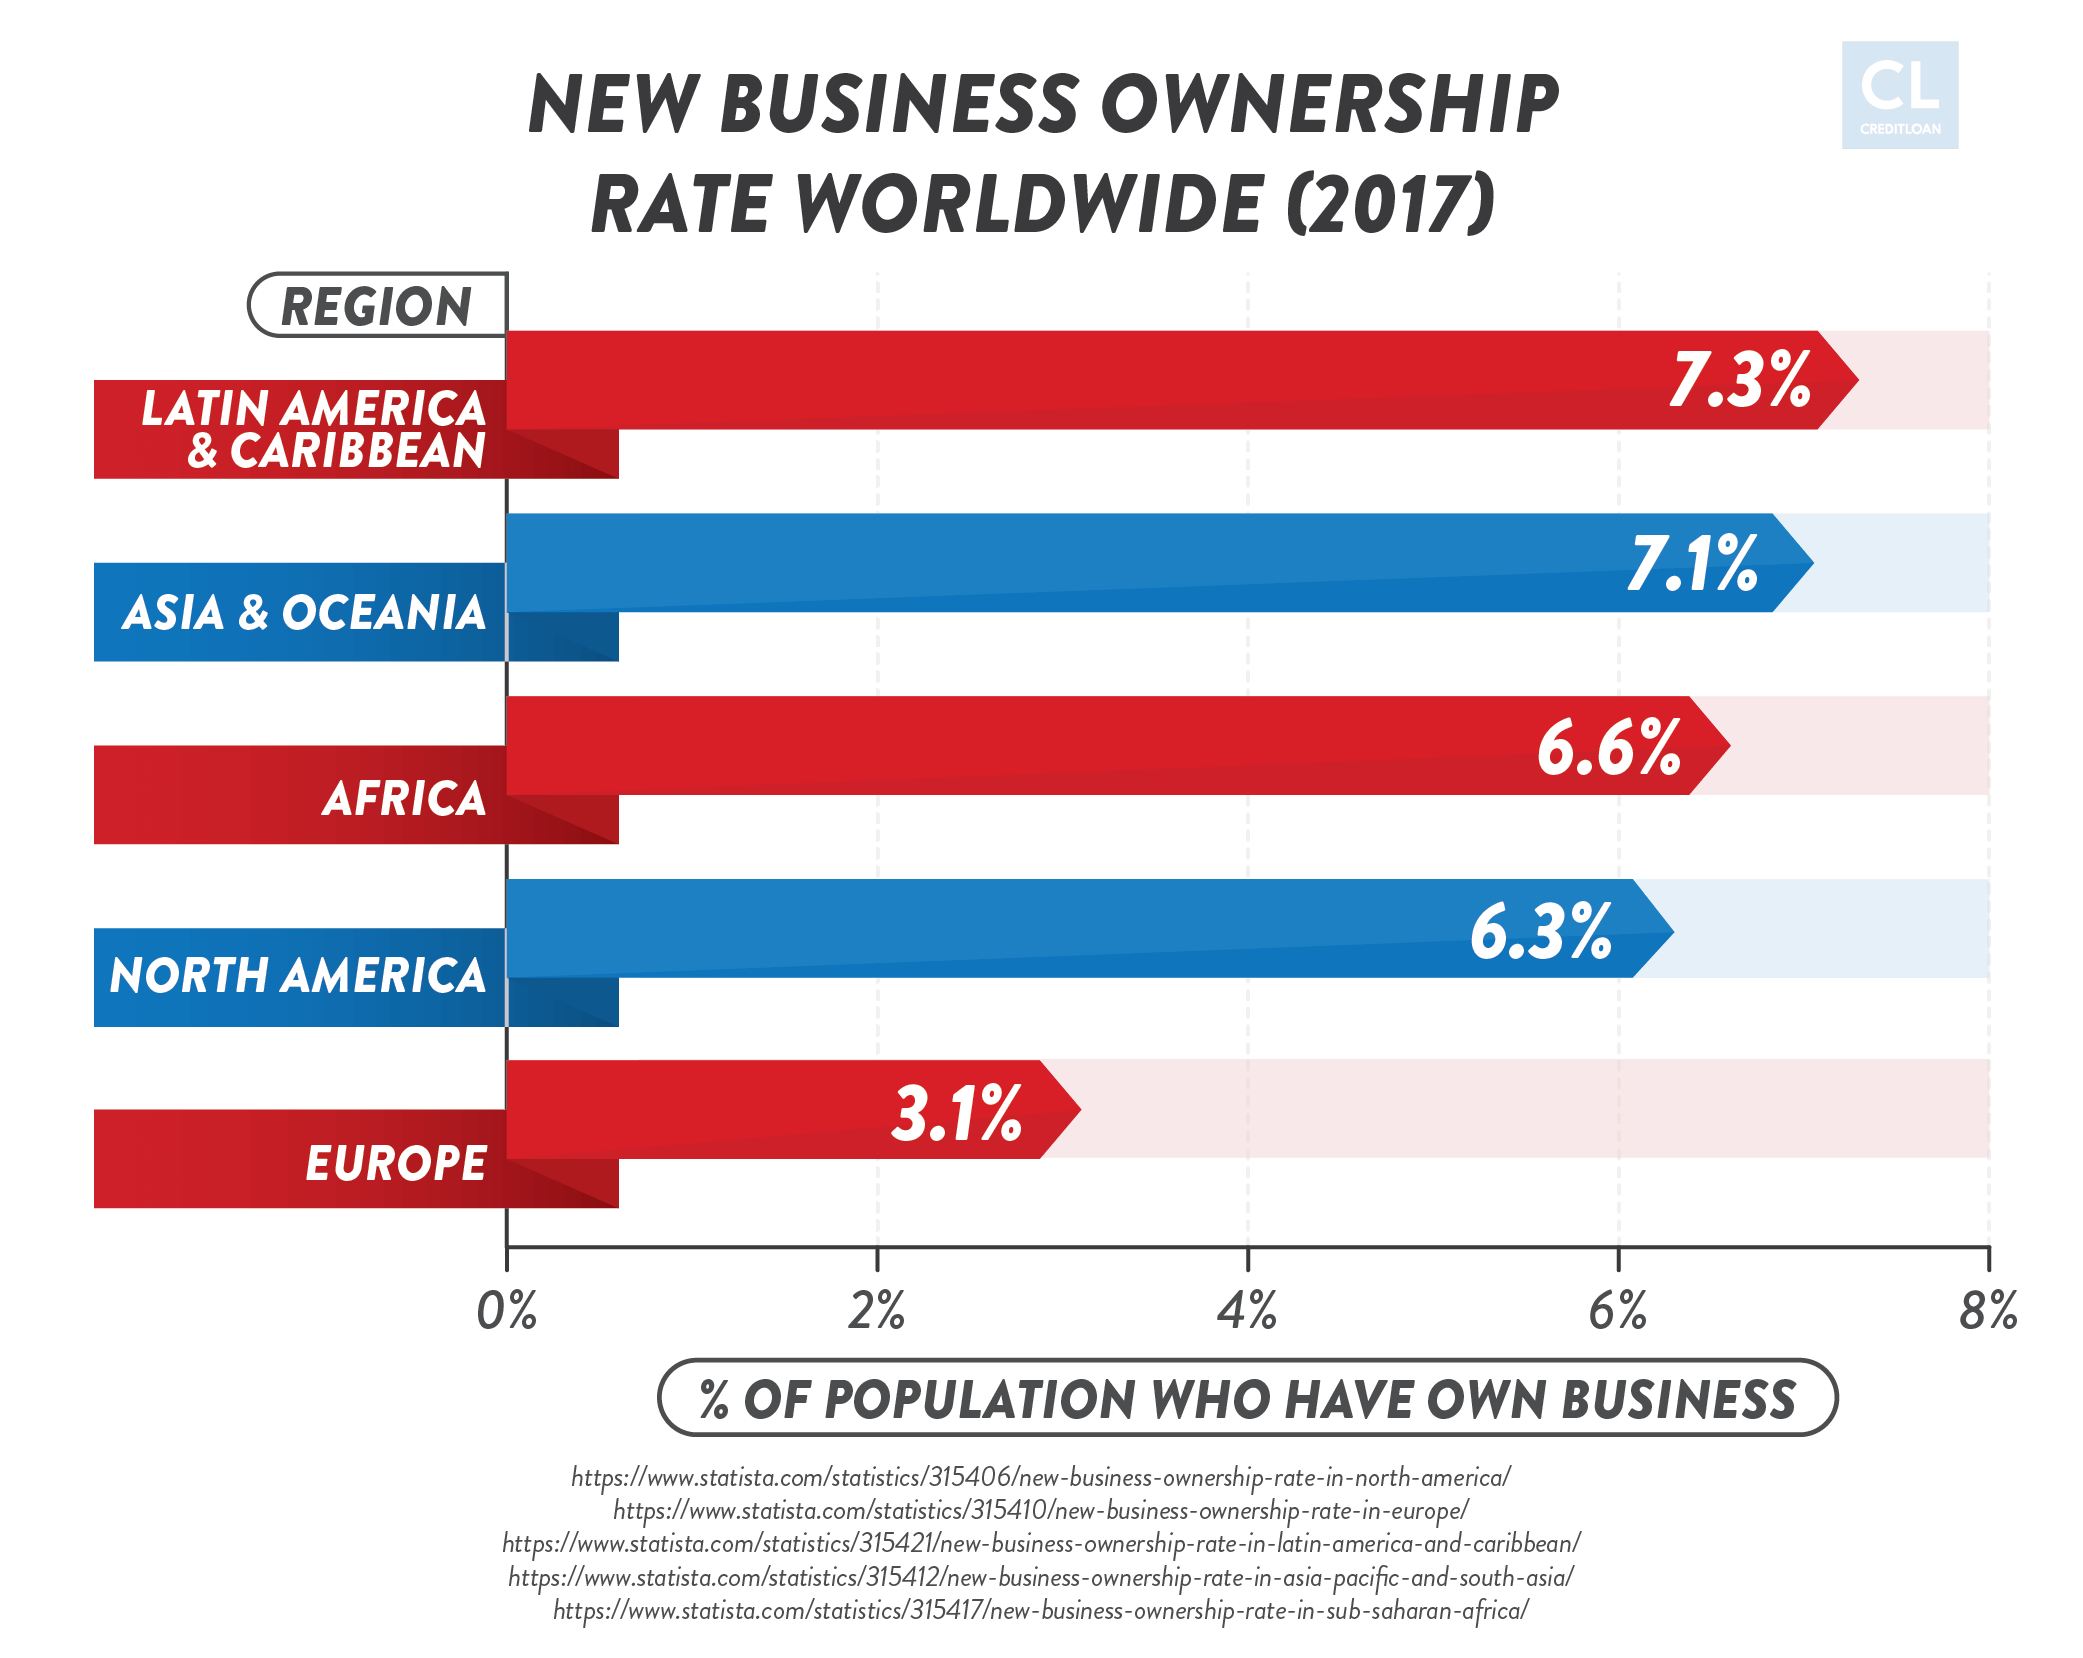 New Business Ownership Rate Worldwide